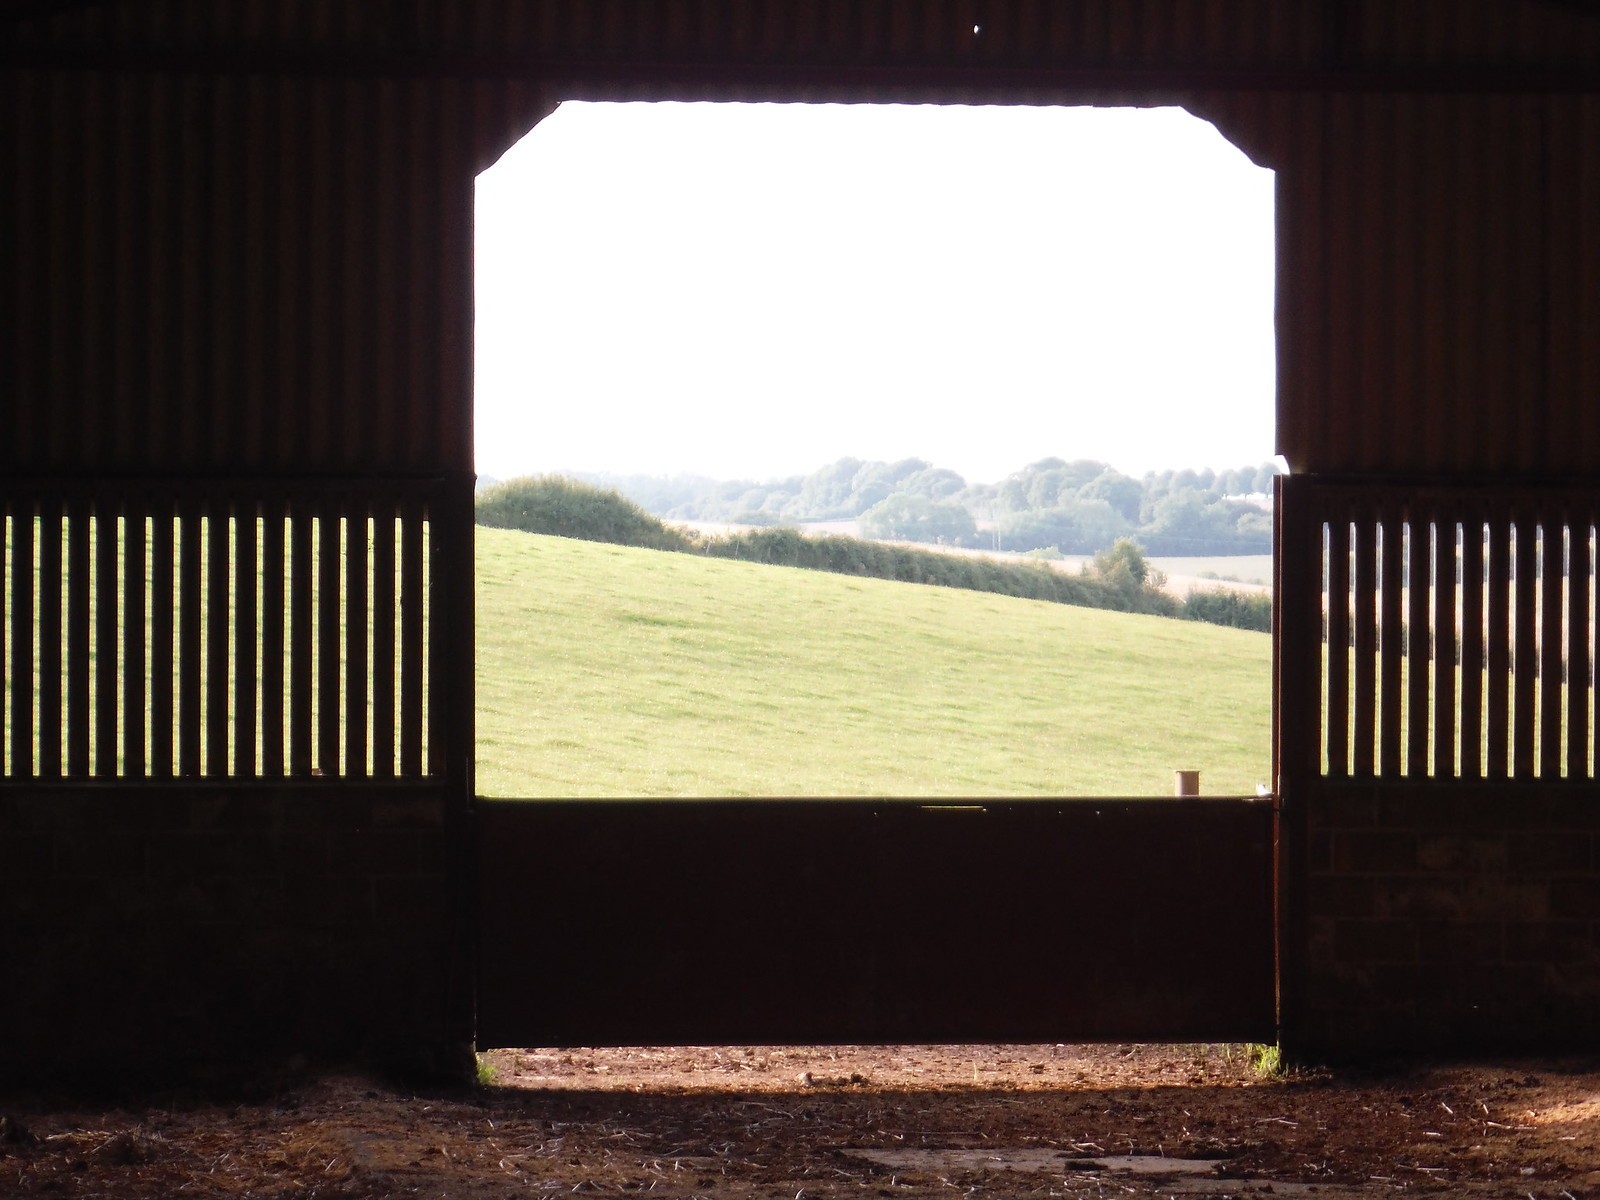 View through Barn, Chicksgrove SWC Walk 250 Tisbury Circular via Alvediston